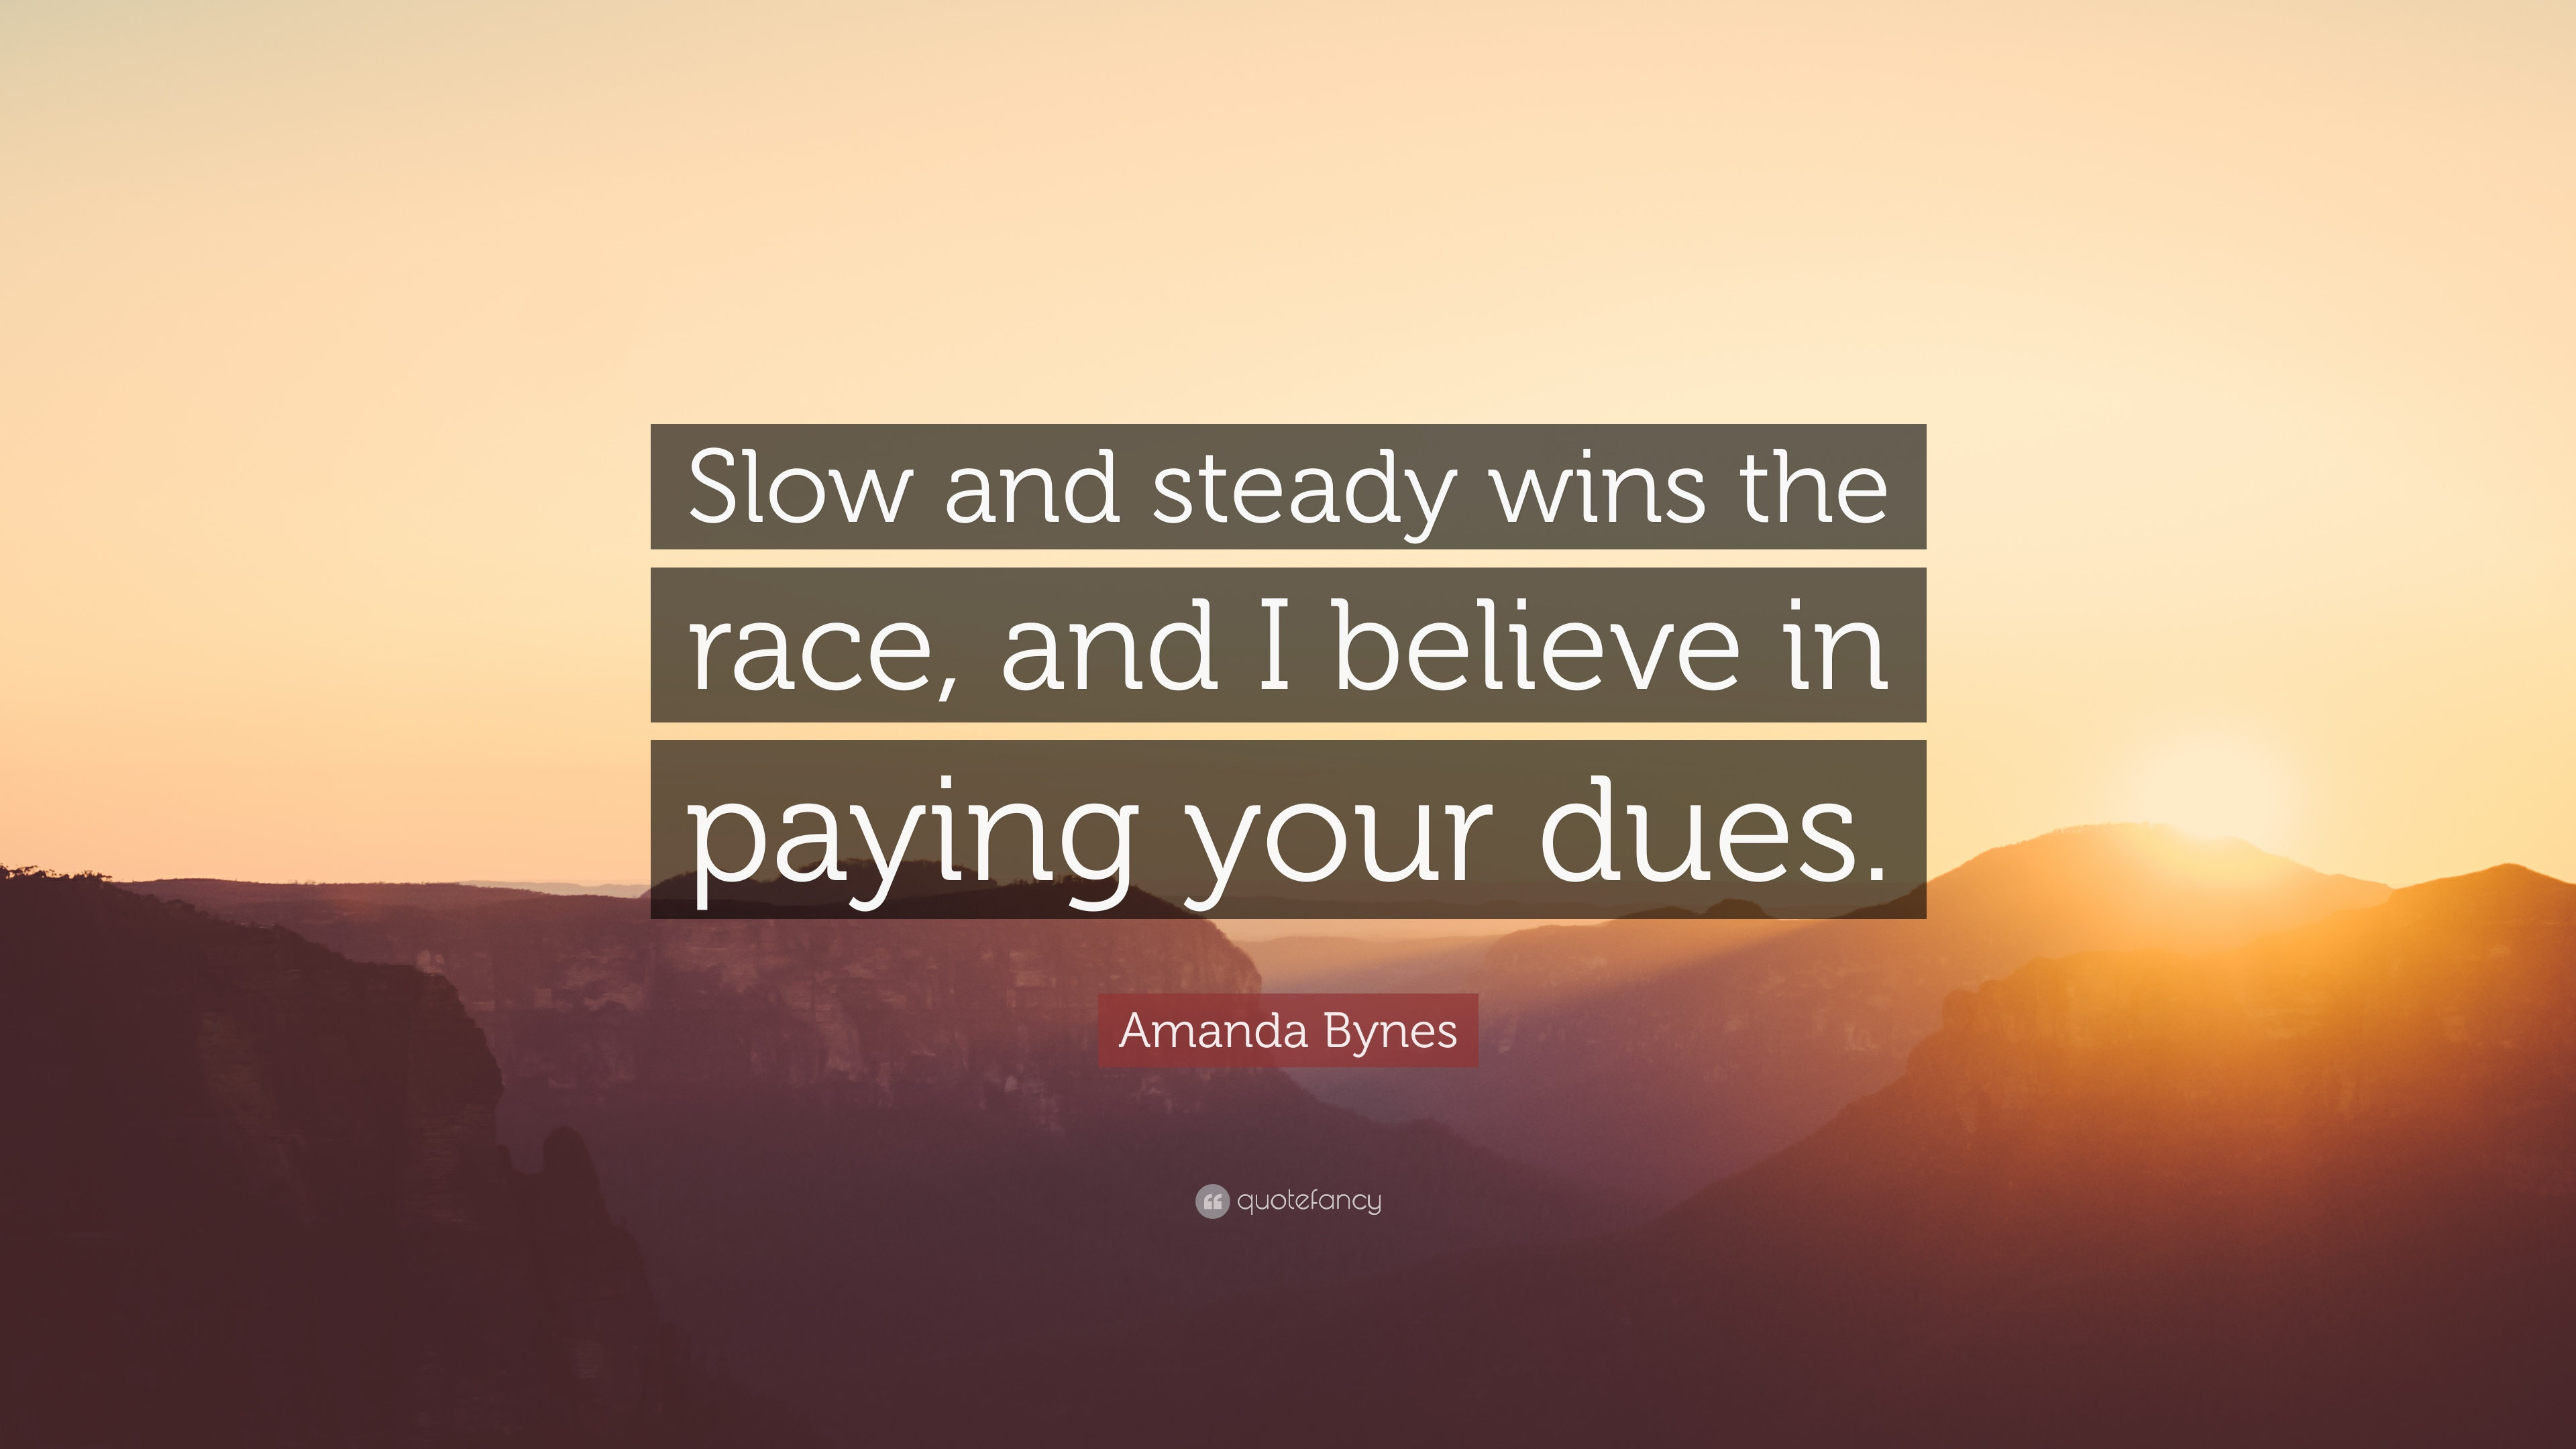 Amanda Bynes Quote Slow And Steady Wins The Race And I Believe In Paying Your Dues 7 Wallpapers Quotefancy